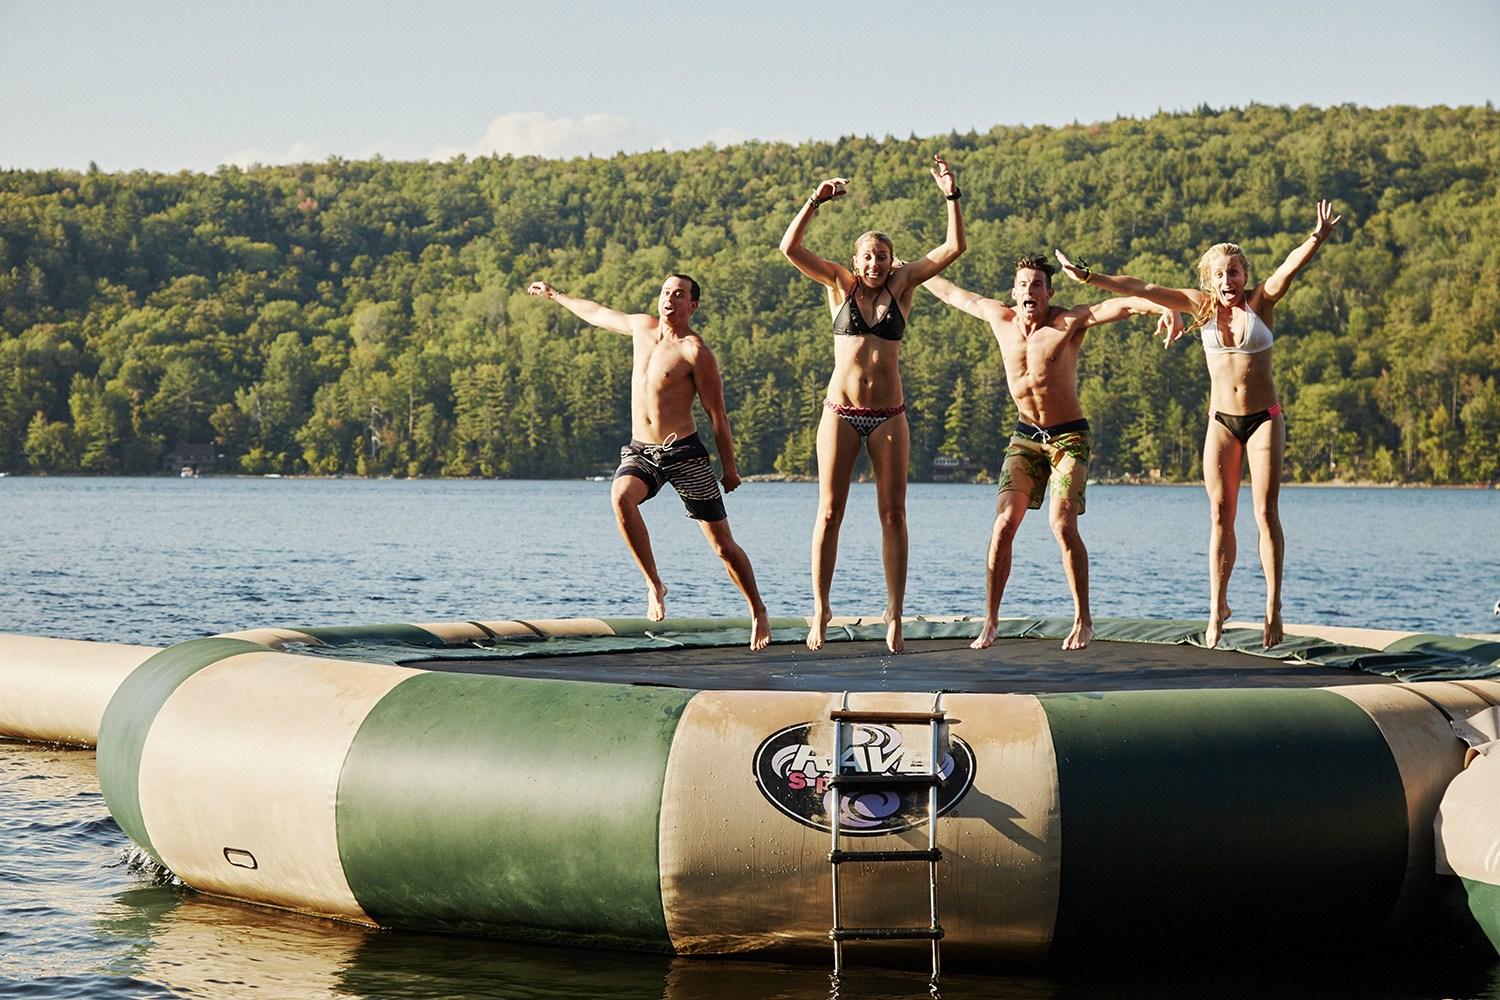 Water activities and swimming at the adult summer camp (Dave Kushner/Camp No Counselors)